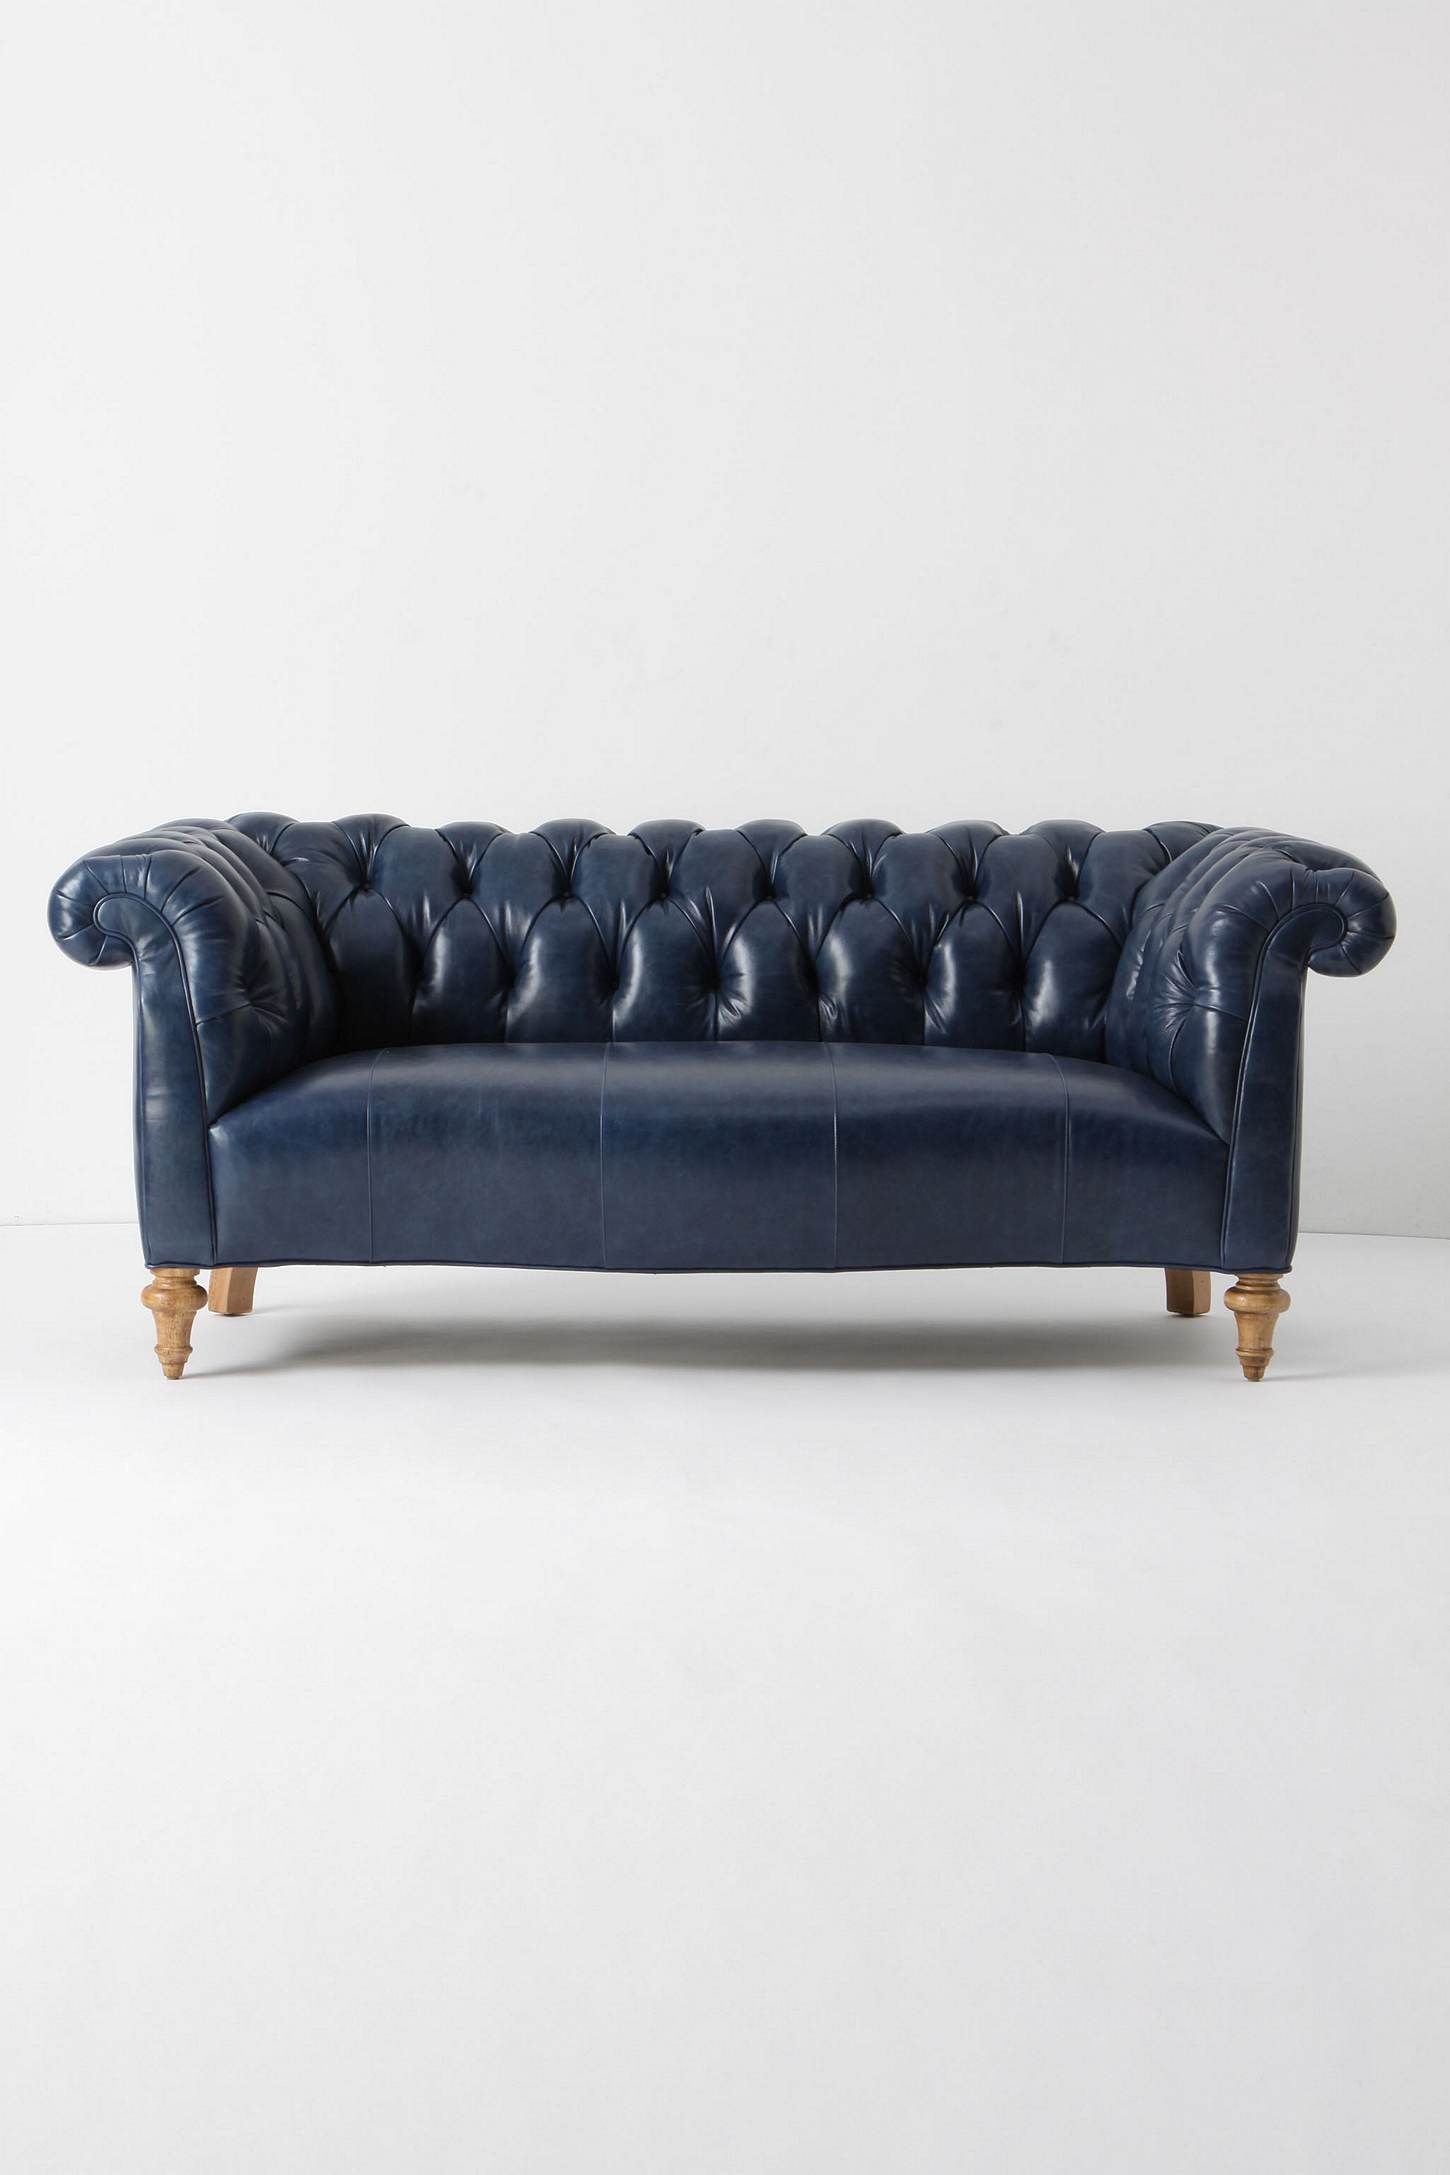 Milo Sofa | For Lounging (Couches, Chairs & Seating) | Pinterest Pertaining To Milo Sofa Chairs (Image 15 of 25)